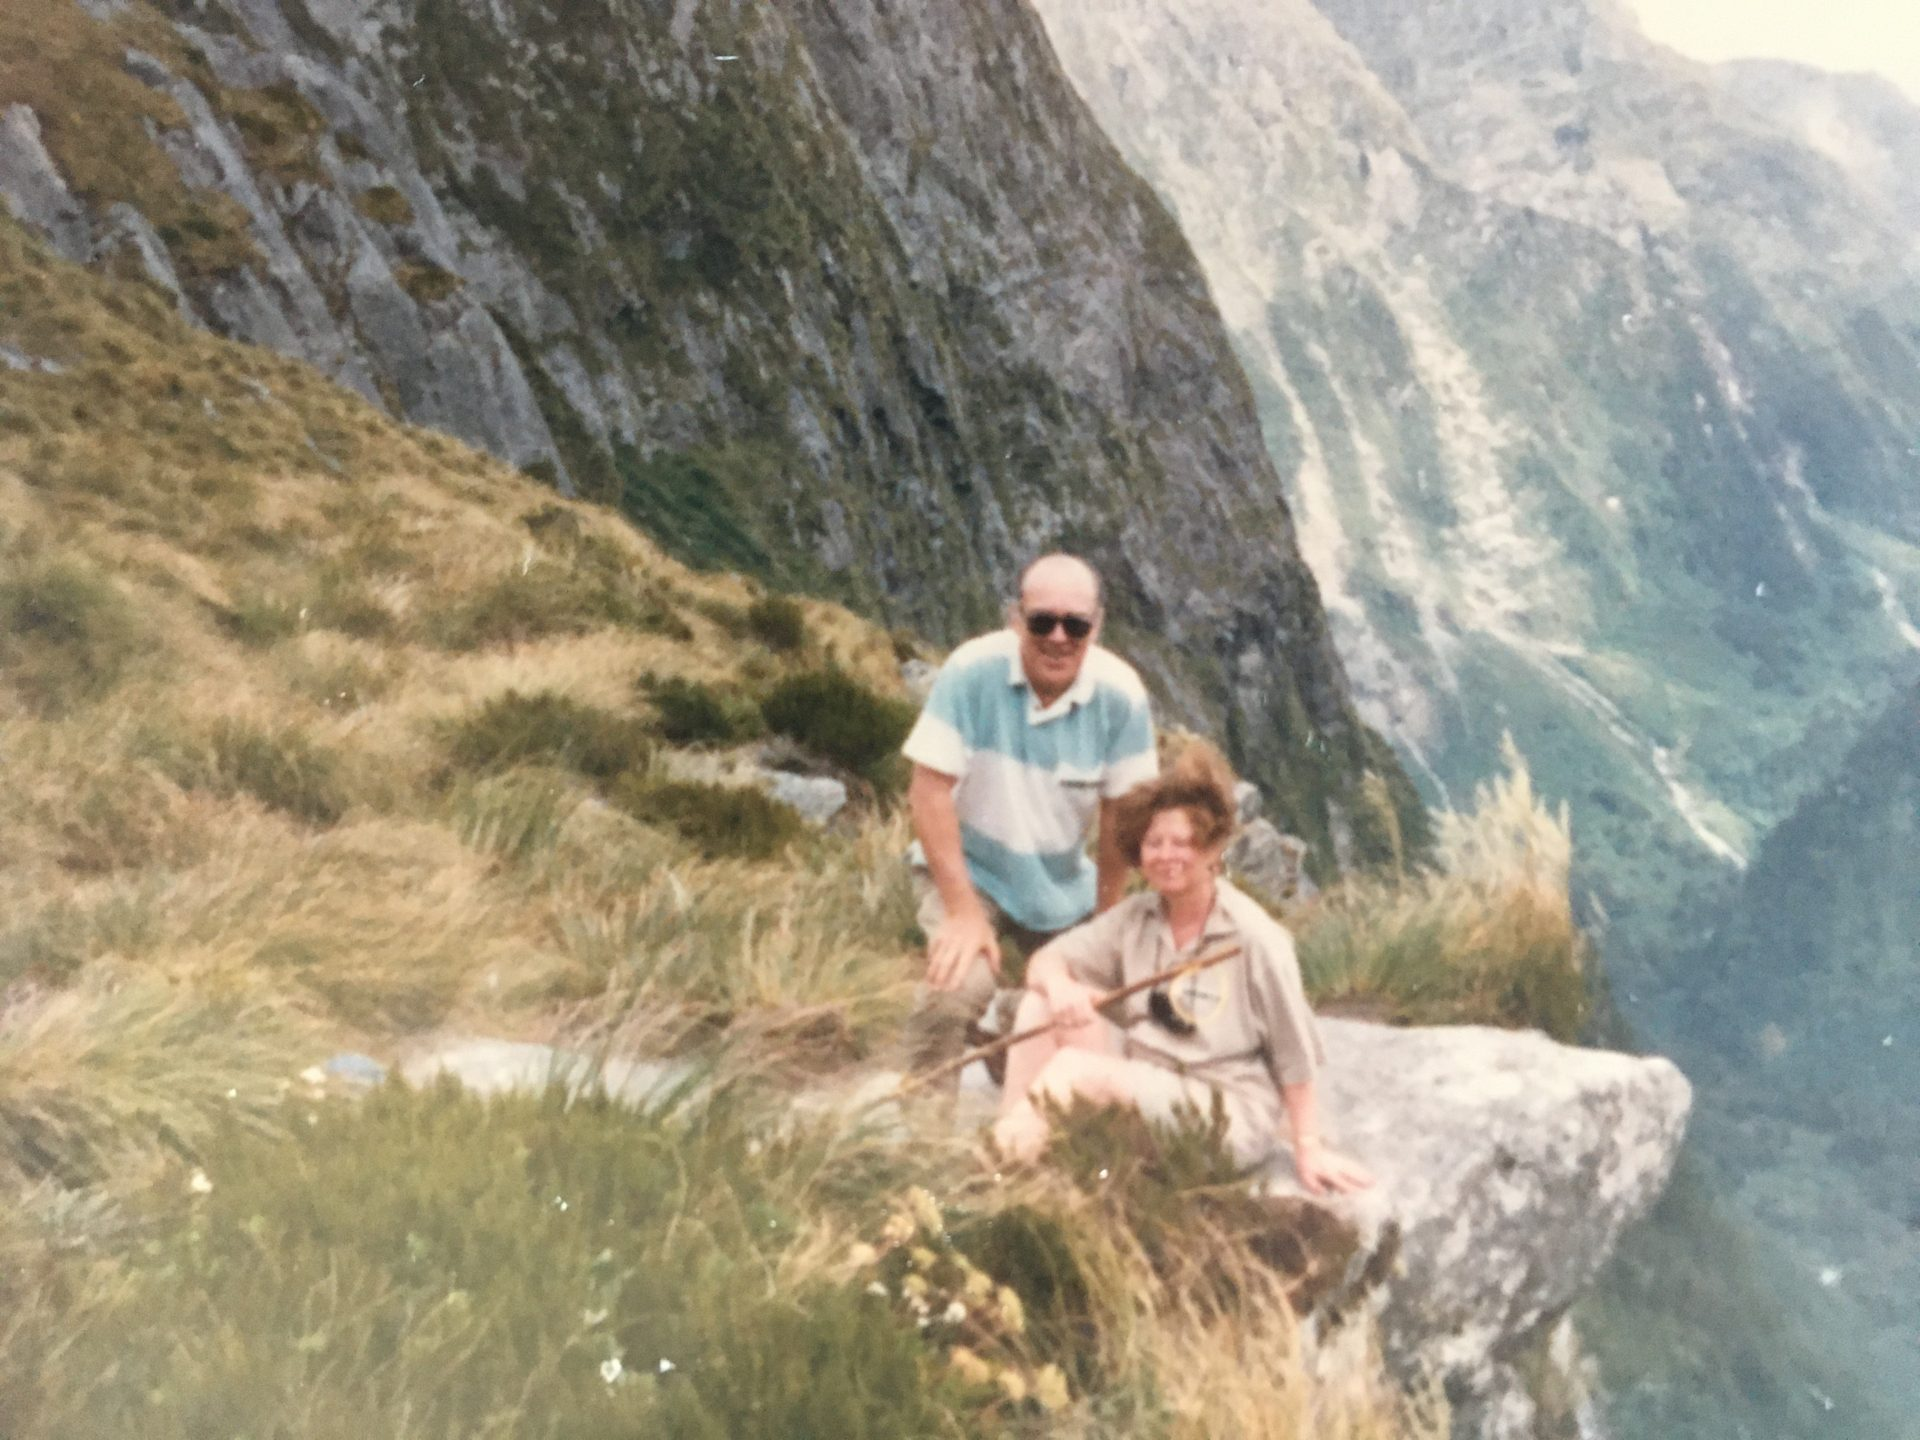 Dick and Thelma hiking in the mountains on their trip to China and Mongolia, July 1990